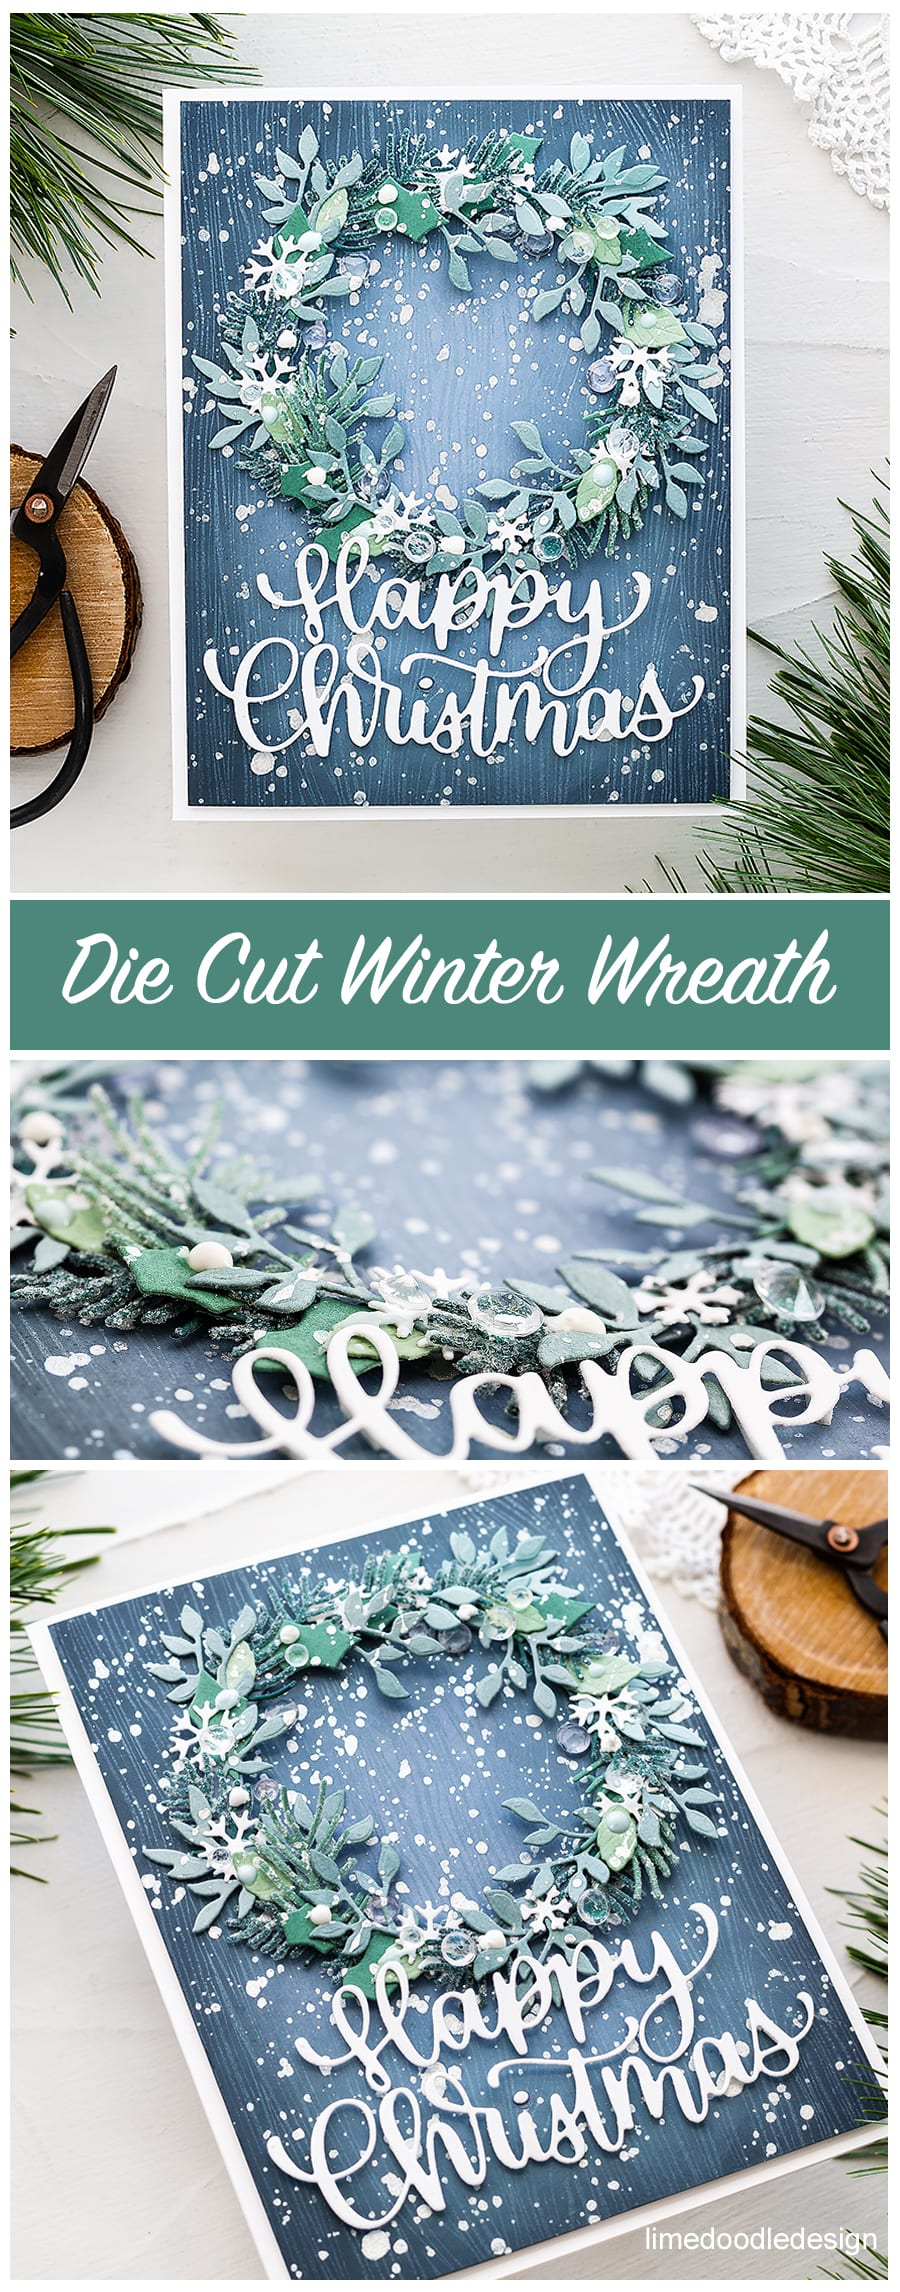 Video tutorial - die cut winter wreath handmade Christmas card by Debby Hughes using products from Simon Says Stamp. Find out more here: https://limedoodledesign.com/2018/11/video-die-cut-winter-wreath/